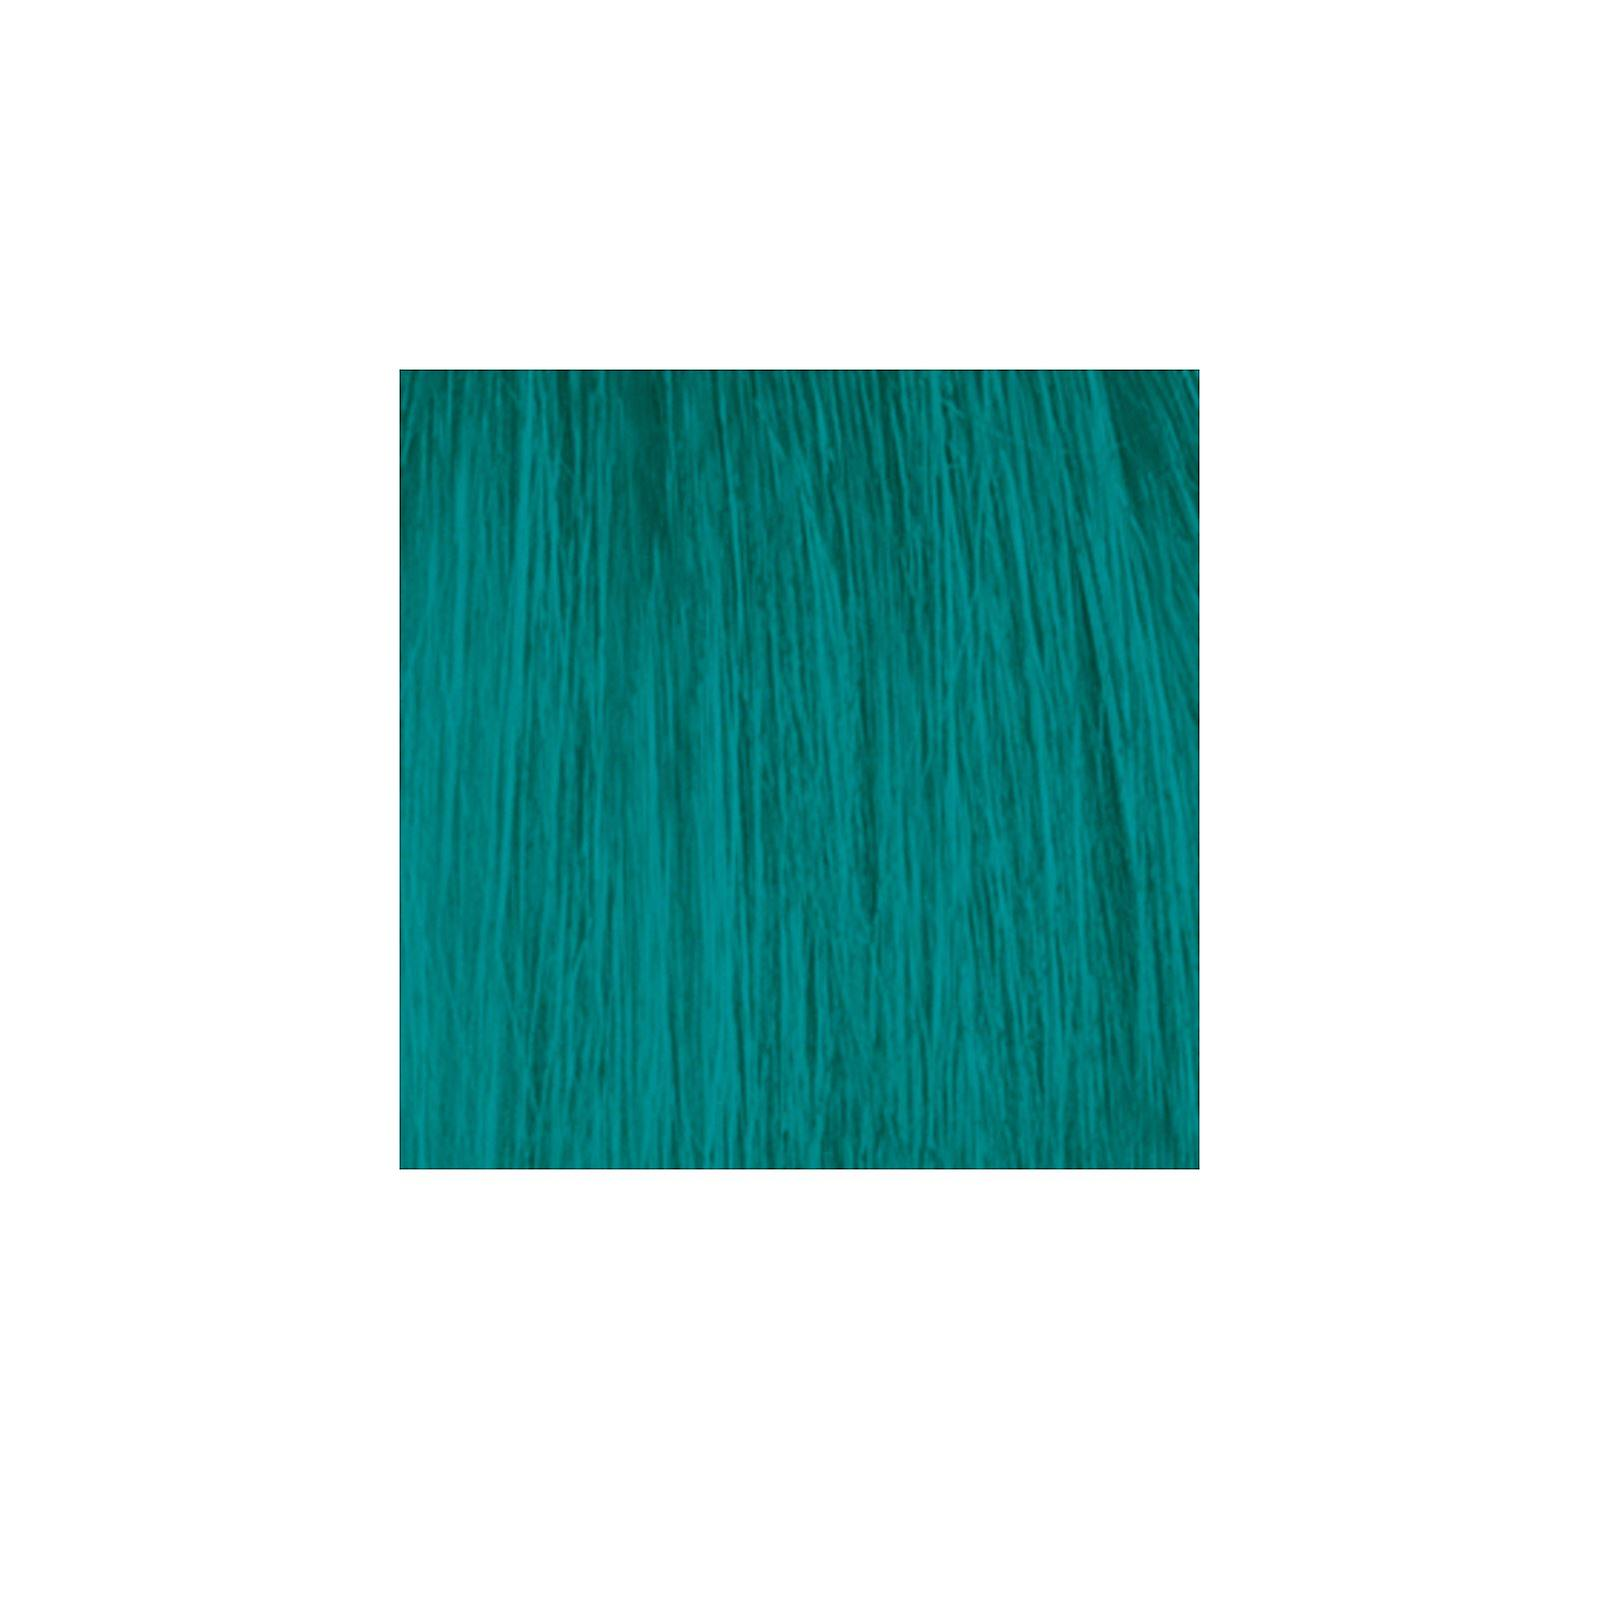 Hair Dye Semi Permanent by Stargazer - TROPICAL GREEN With Free Gloves